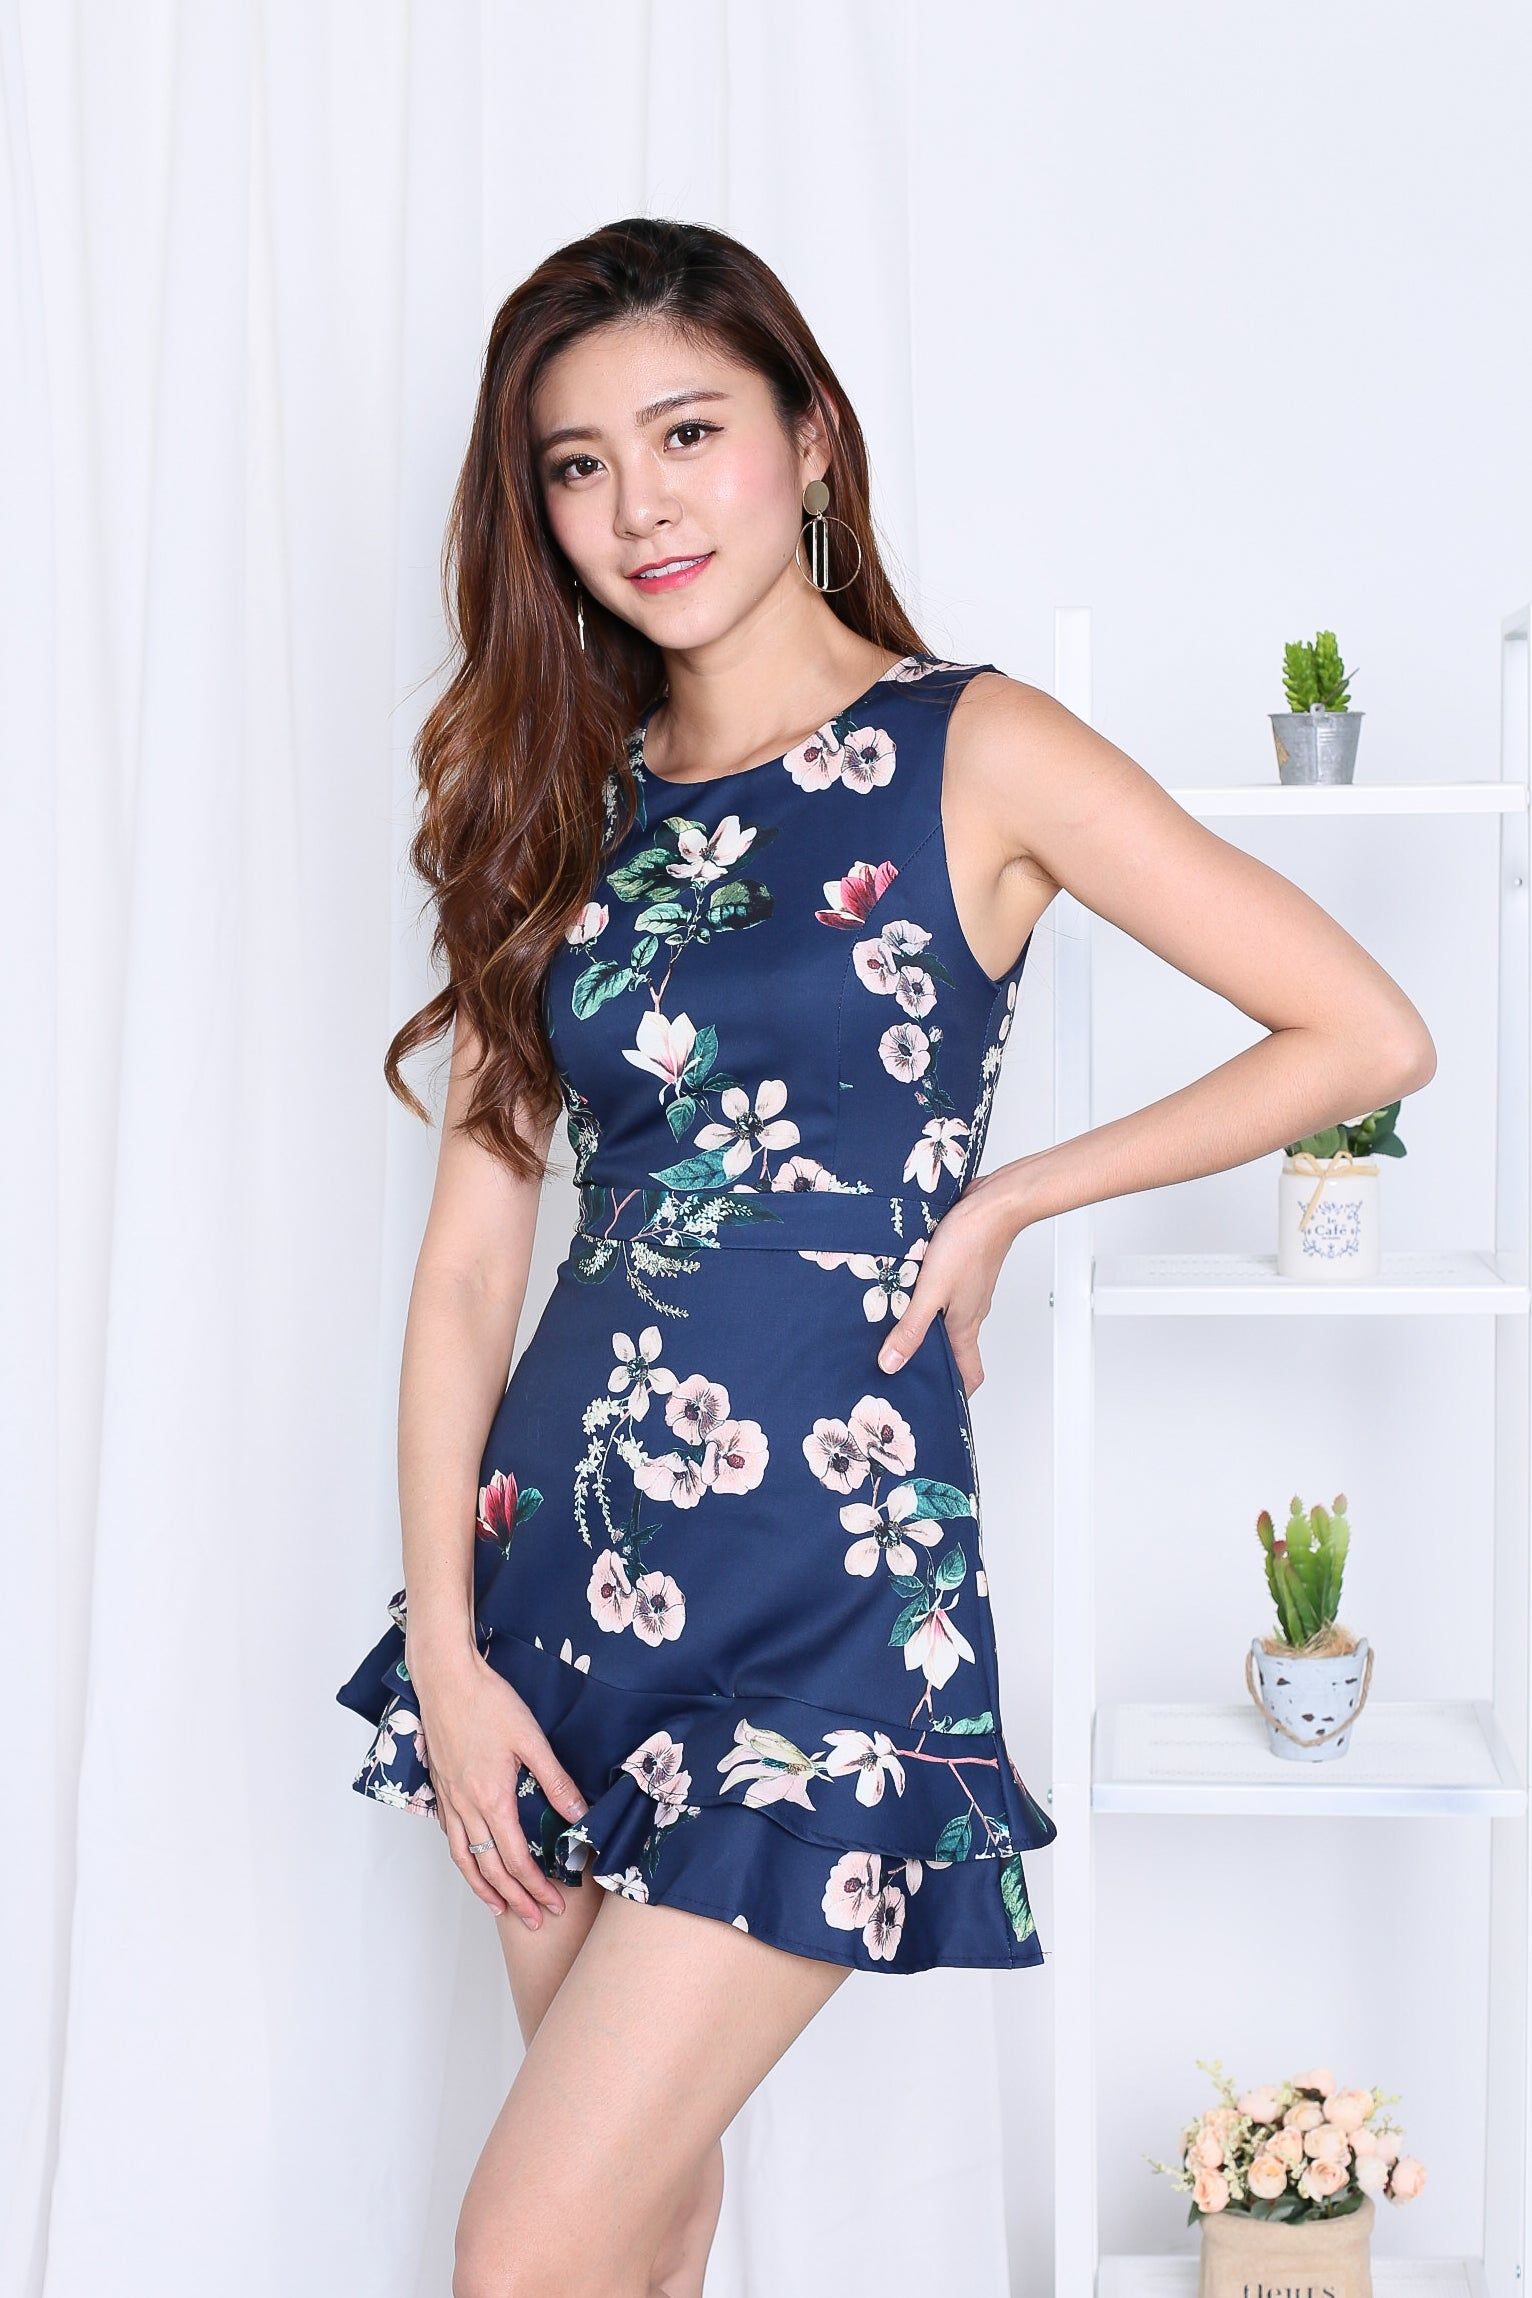 *TOPAZ* (PREMIUM) YEVA MERMAID DRESS ROMPER IN NAVY FLORALS